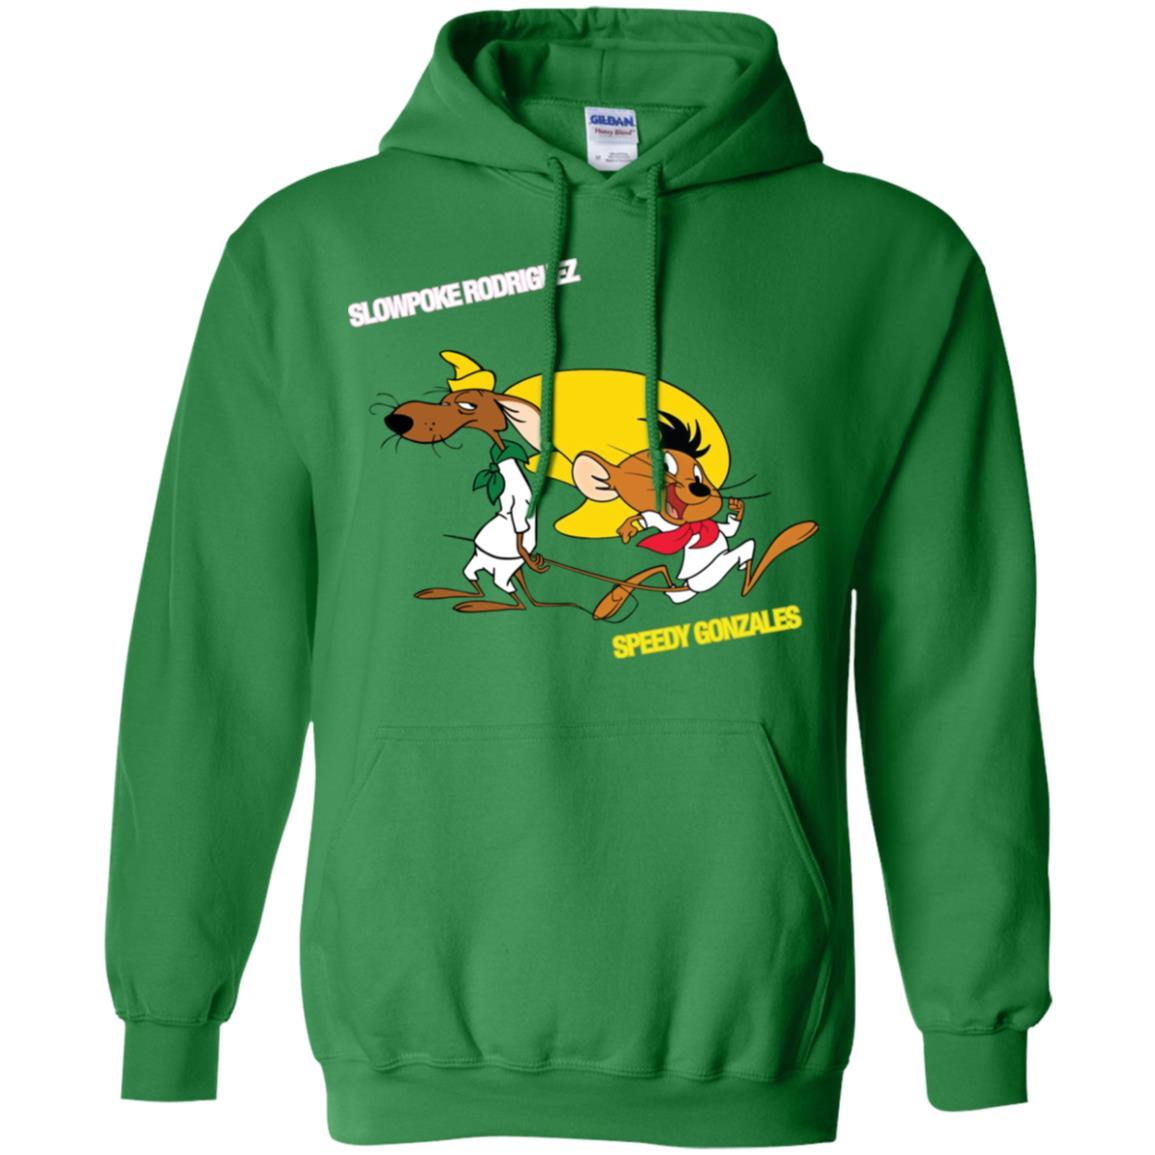 Slowpoke Rodriguez Speedy Gonzalez Funny Vintage Cartoon Tee T-Shirt G185 Gildan Pullover Hoodie 8 oz. / Irish Green / 3XL